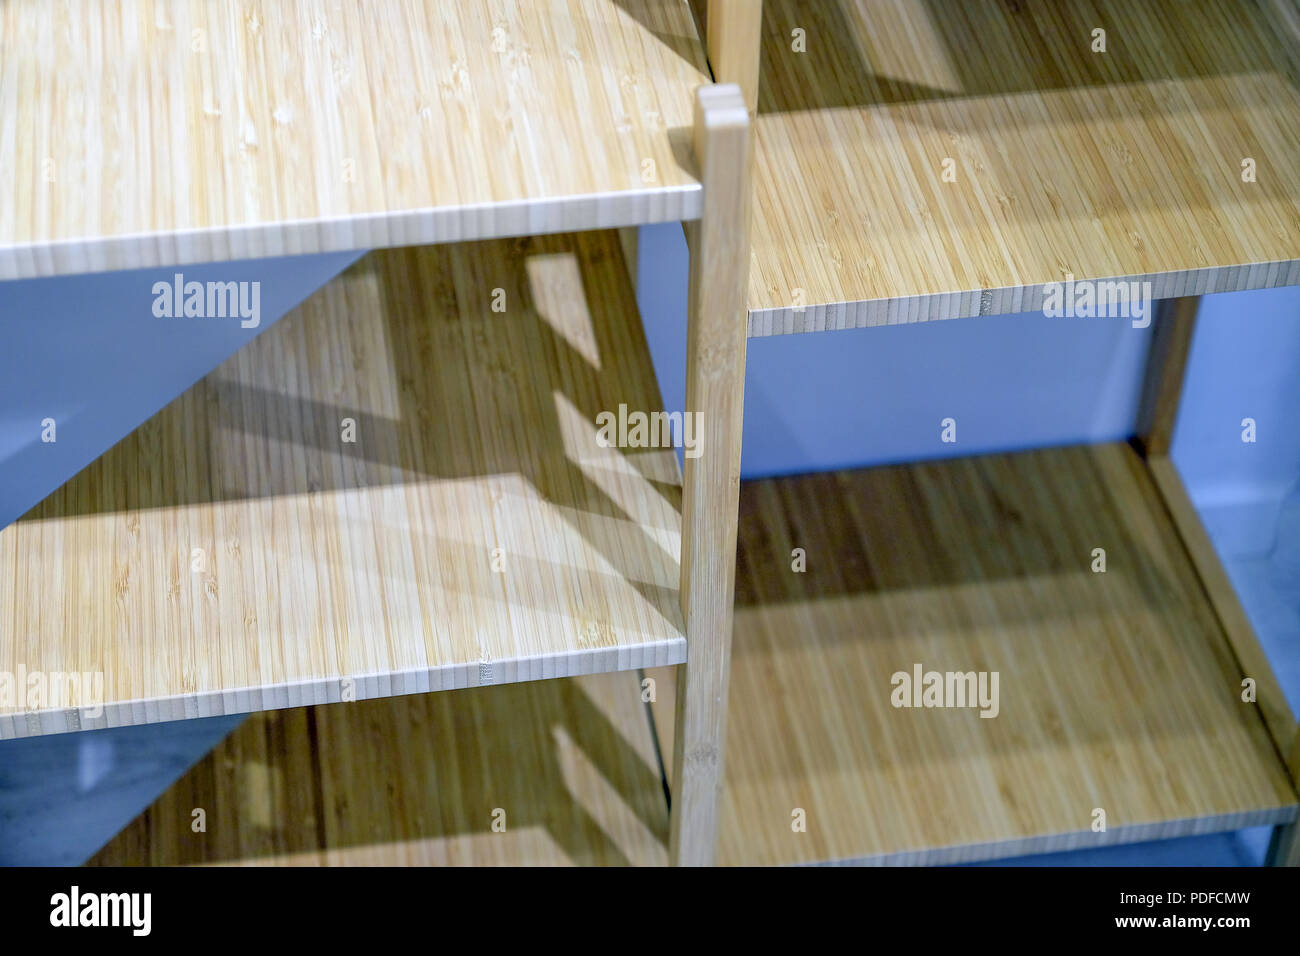 Bamboo drawer surface  Texture Wooden Background  Box with